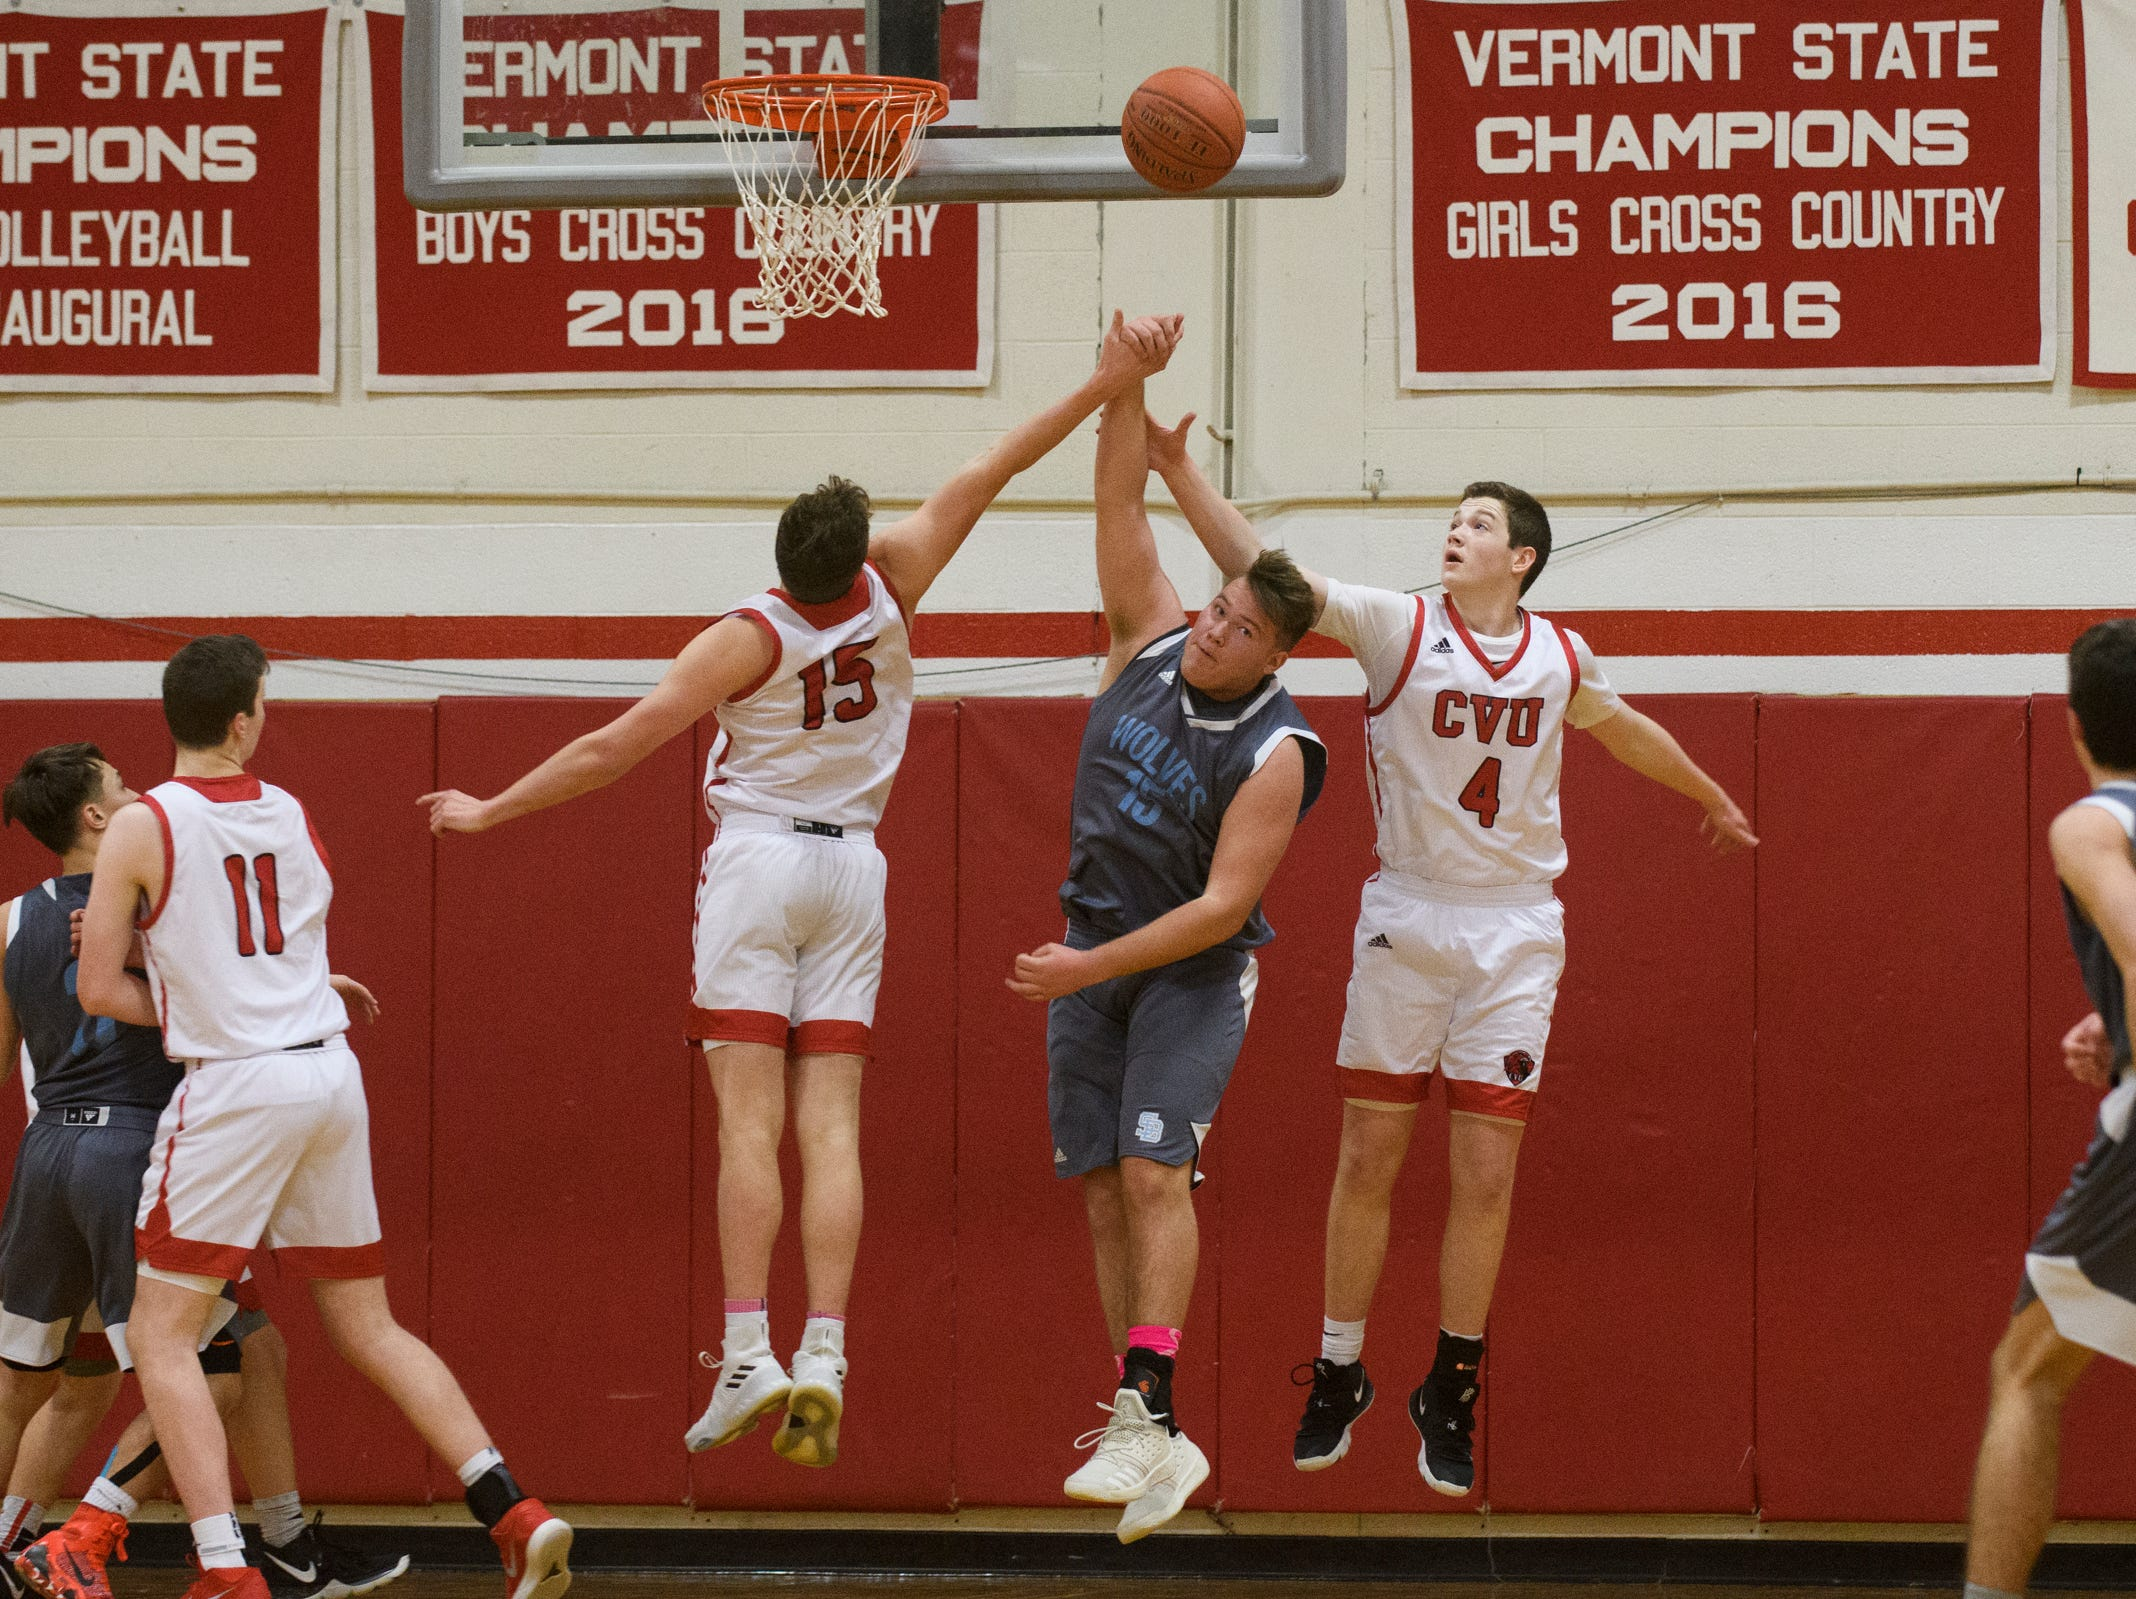 "CVU""s Mason Otley (4) and Bennett Cheer (15) battle for the rebound with South Burlington's Owen McDonough (15) during the boys basketball game between he South Burlington Wolves and the Champlain Valley Union Redhawks at CVU High School on Tuesday night March 5, 2019 in Hinesburg, Vermont."